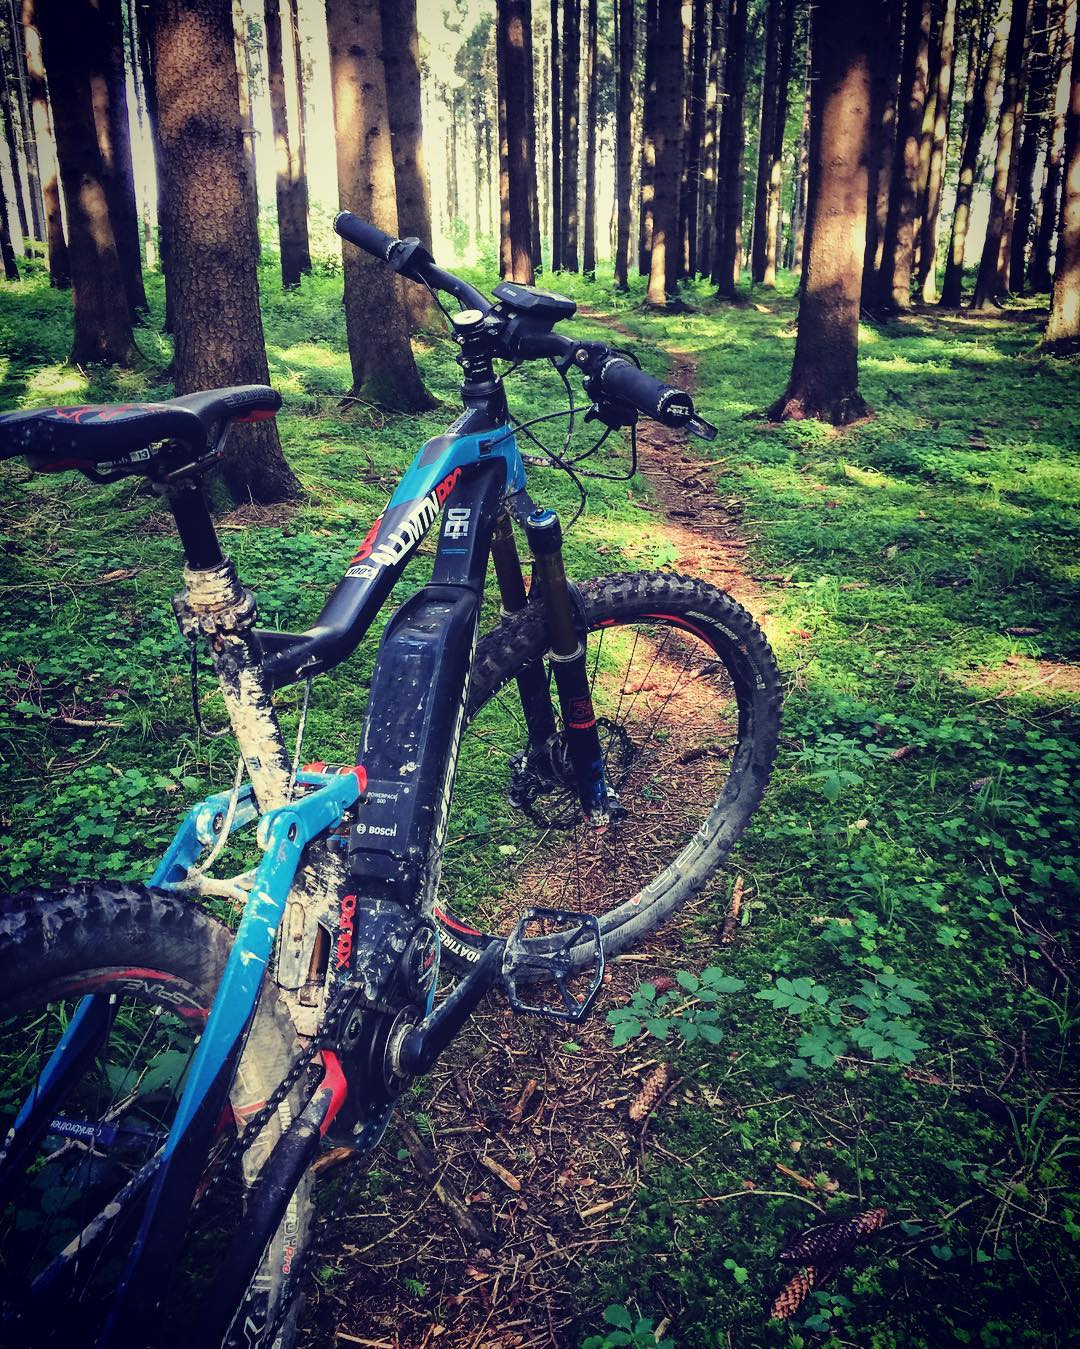 There is little in life as rewarding as finding some new Single-track. #haibike #xduro #emtb #mtb